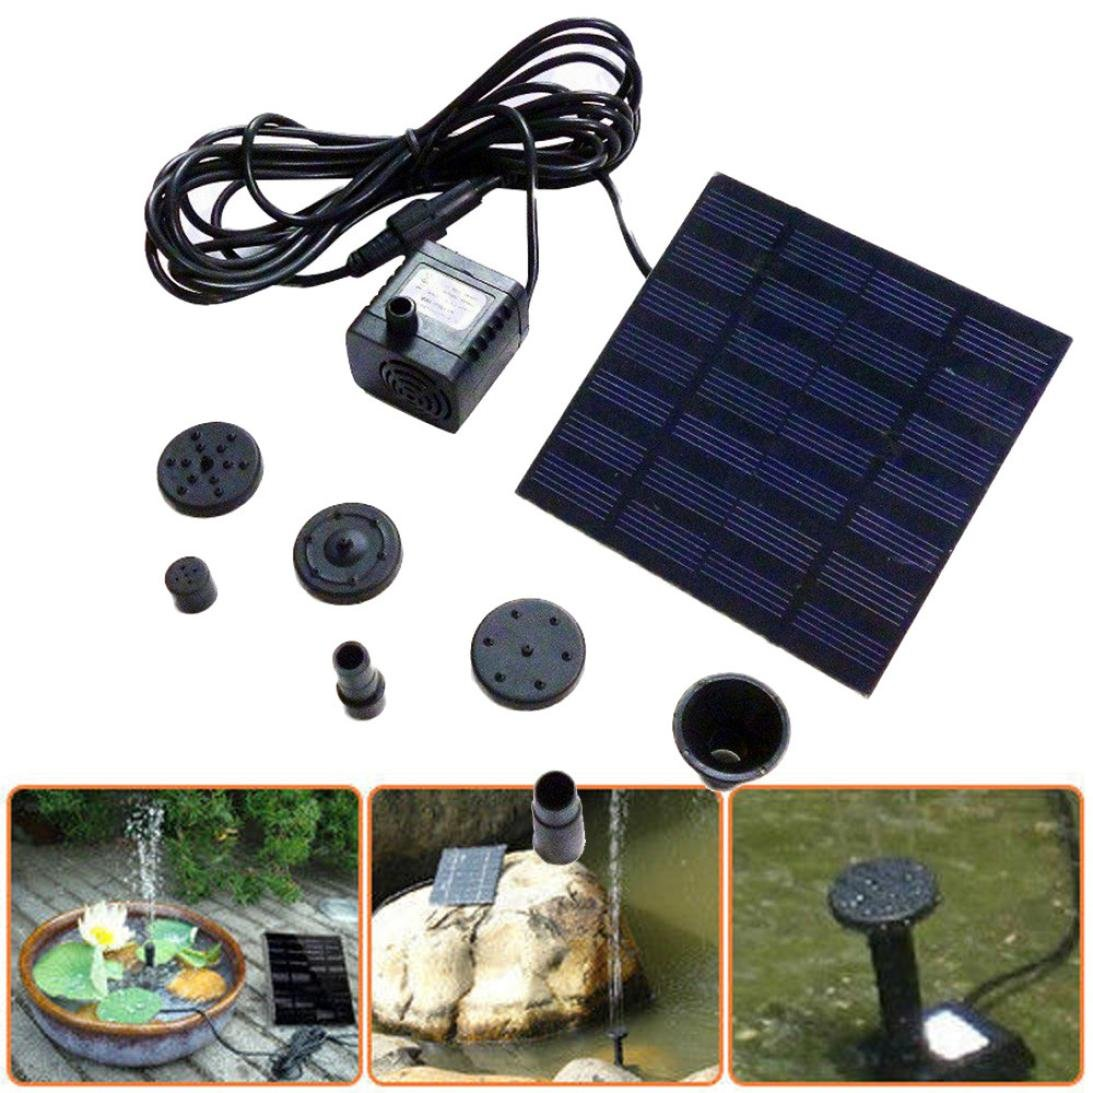 Vanvler Clearance ! Solar Fountain 1.2W 7V Panel Water Pump Fountain Kit Pool Garden Pond Submersible (Black)